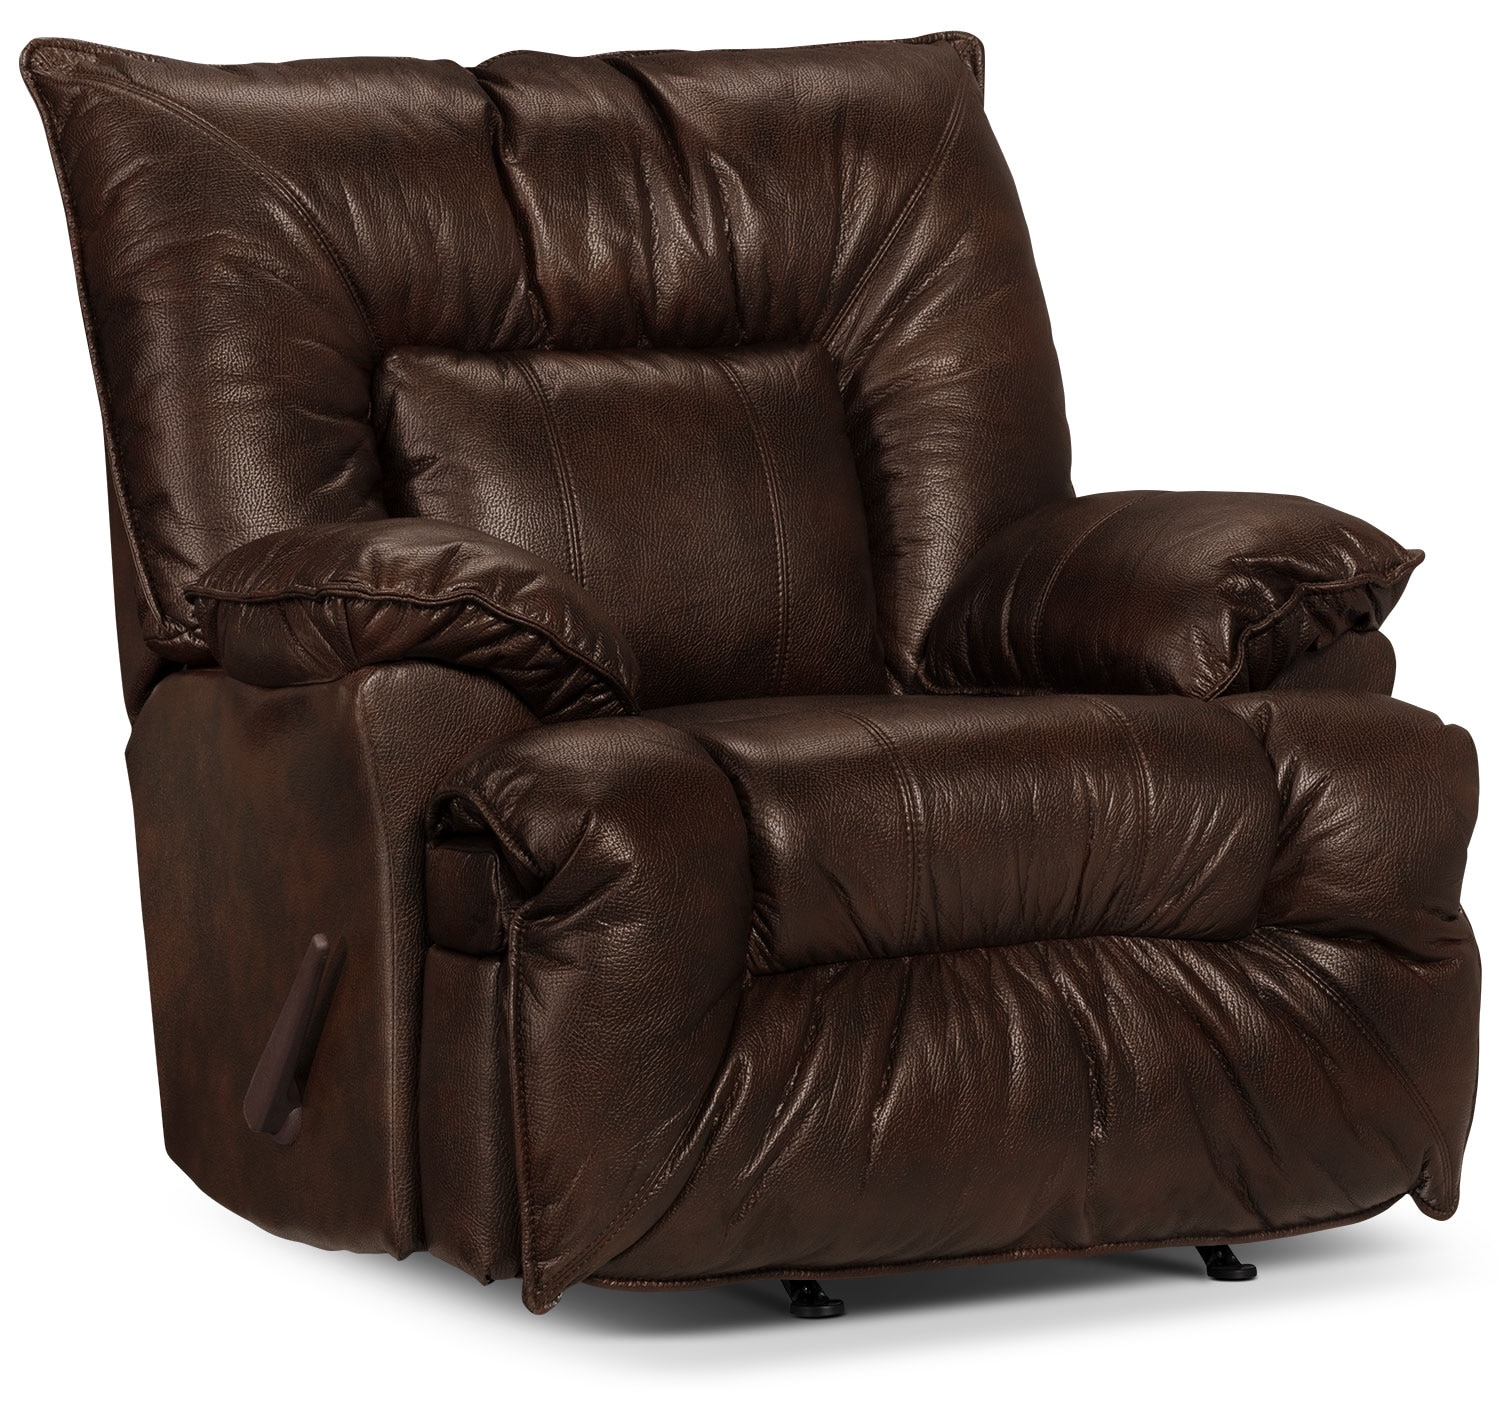 Designed2B Recliner 7726 Genuine Leather Rocker Chair - Chocolate